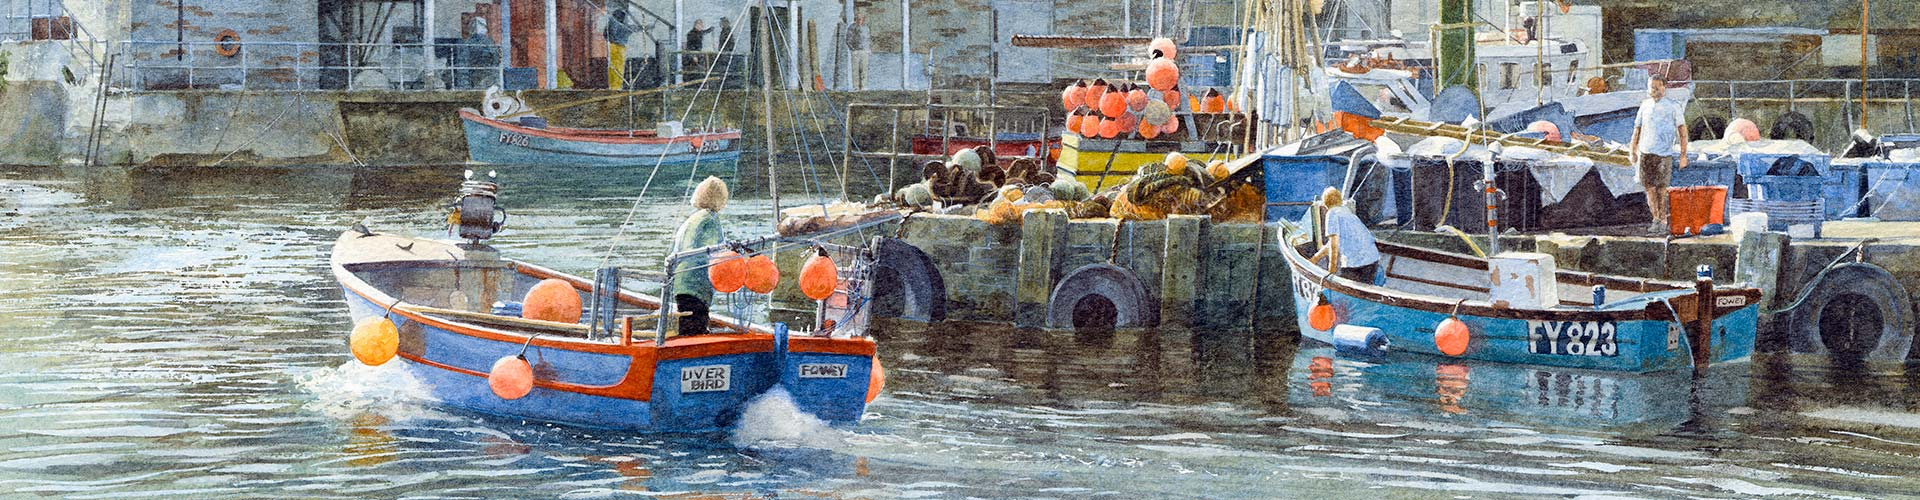 #02238 Mevagissey, Cornwall. Copyright - Alistair Butt RSMA